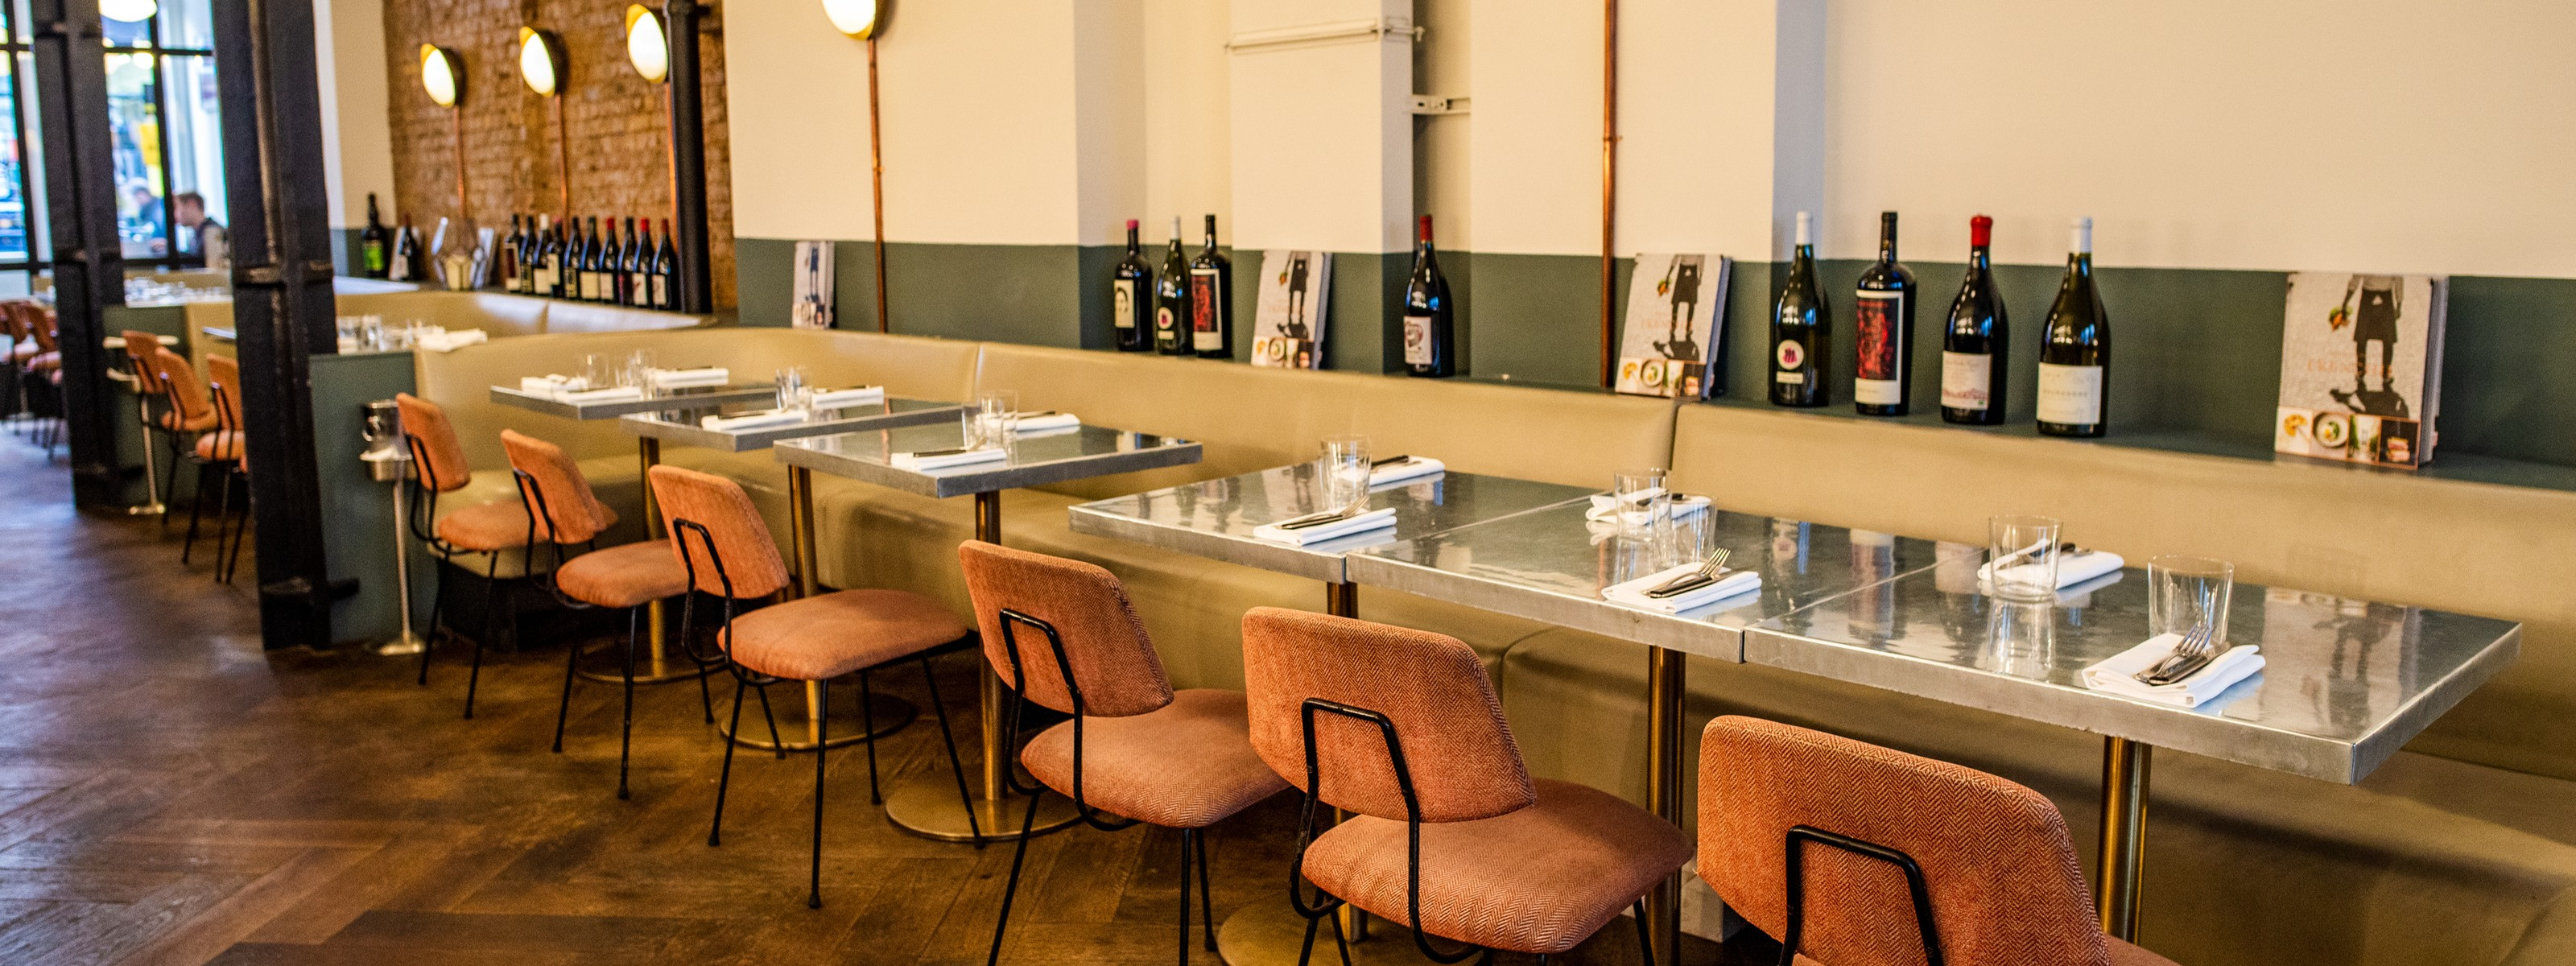 The Best Restaurants In The West End - London - The Infatuation